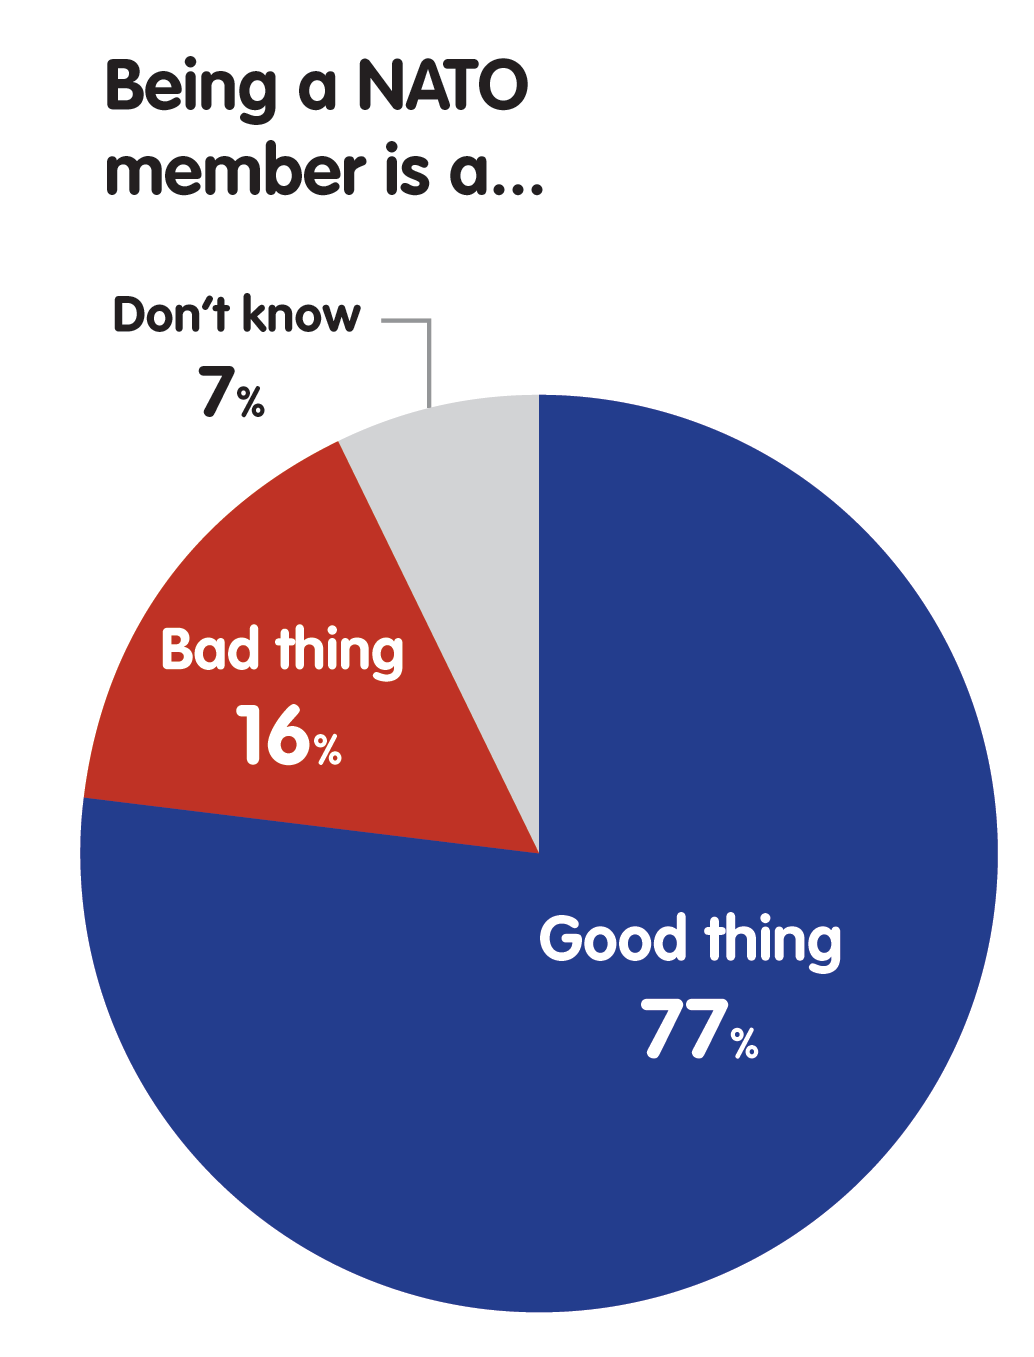 support for NATO membership